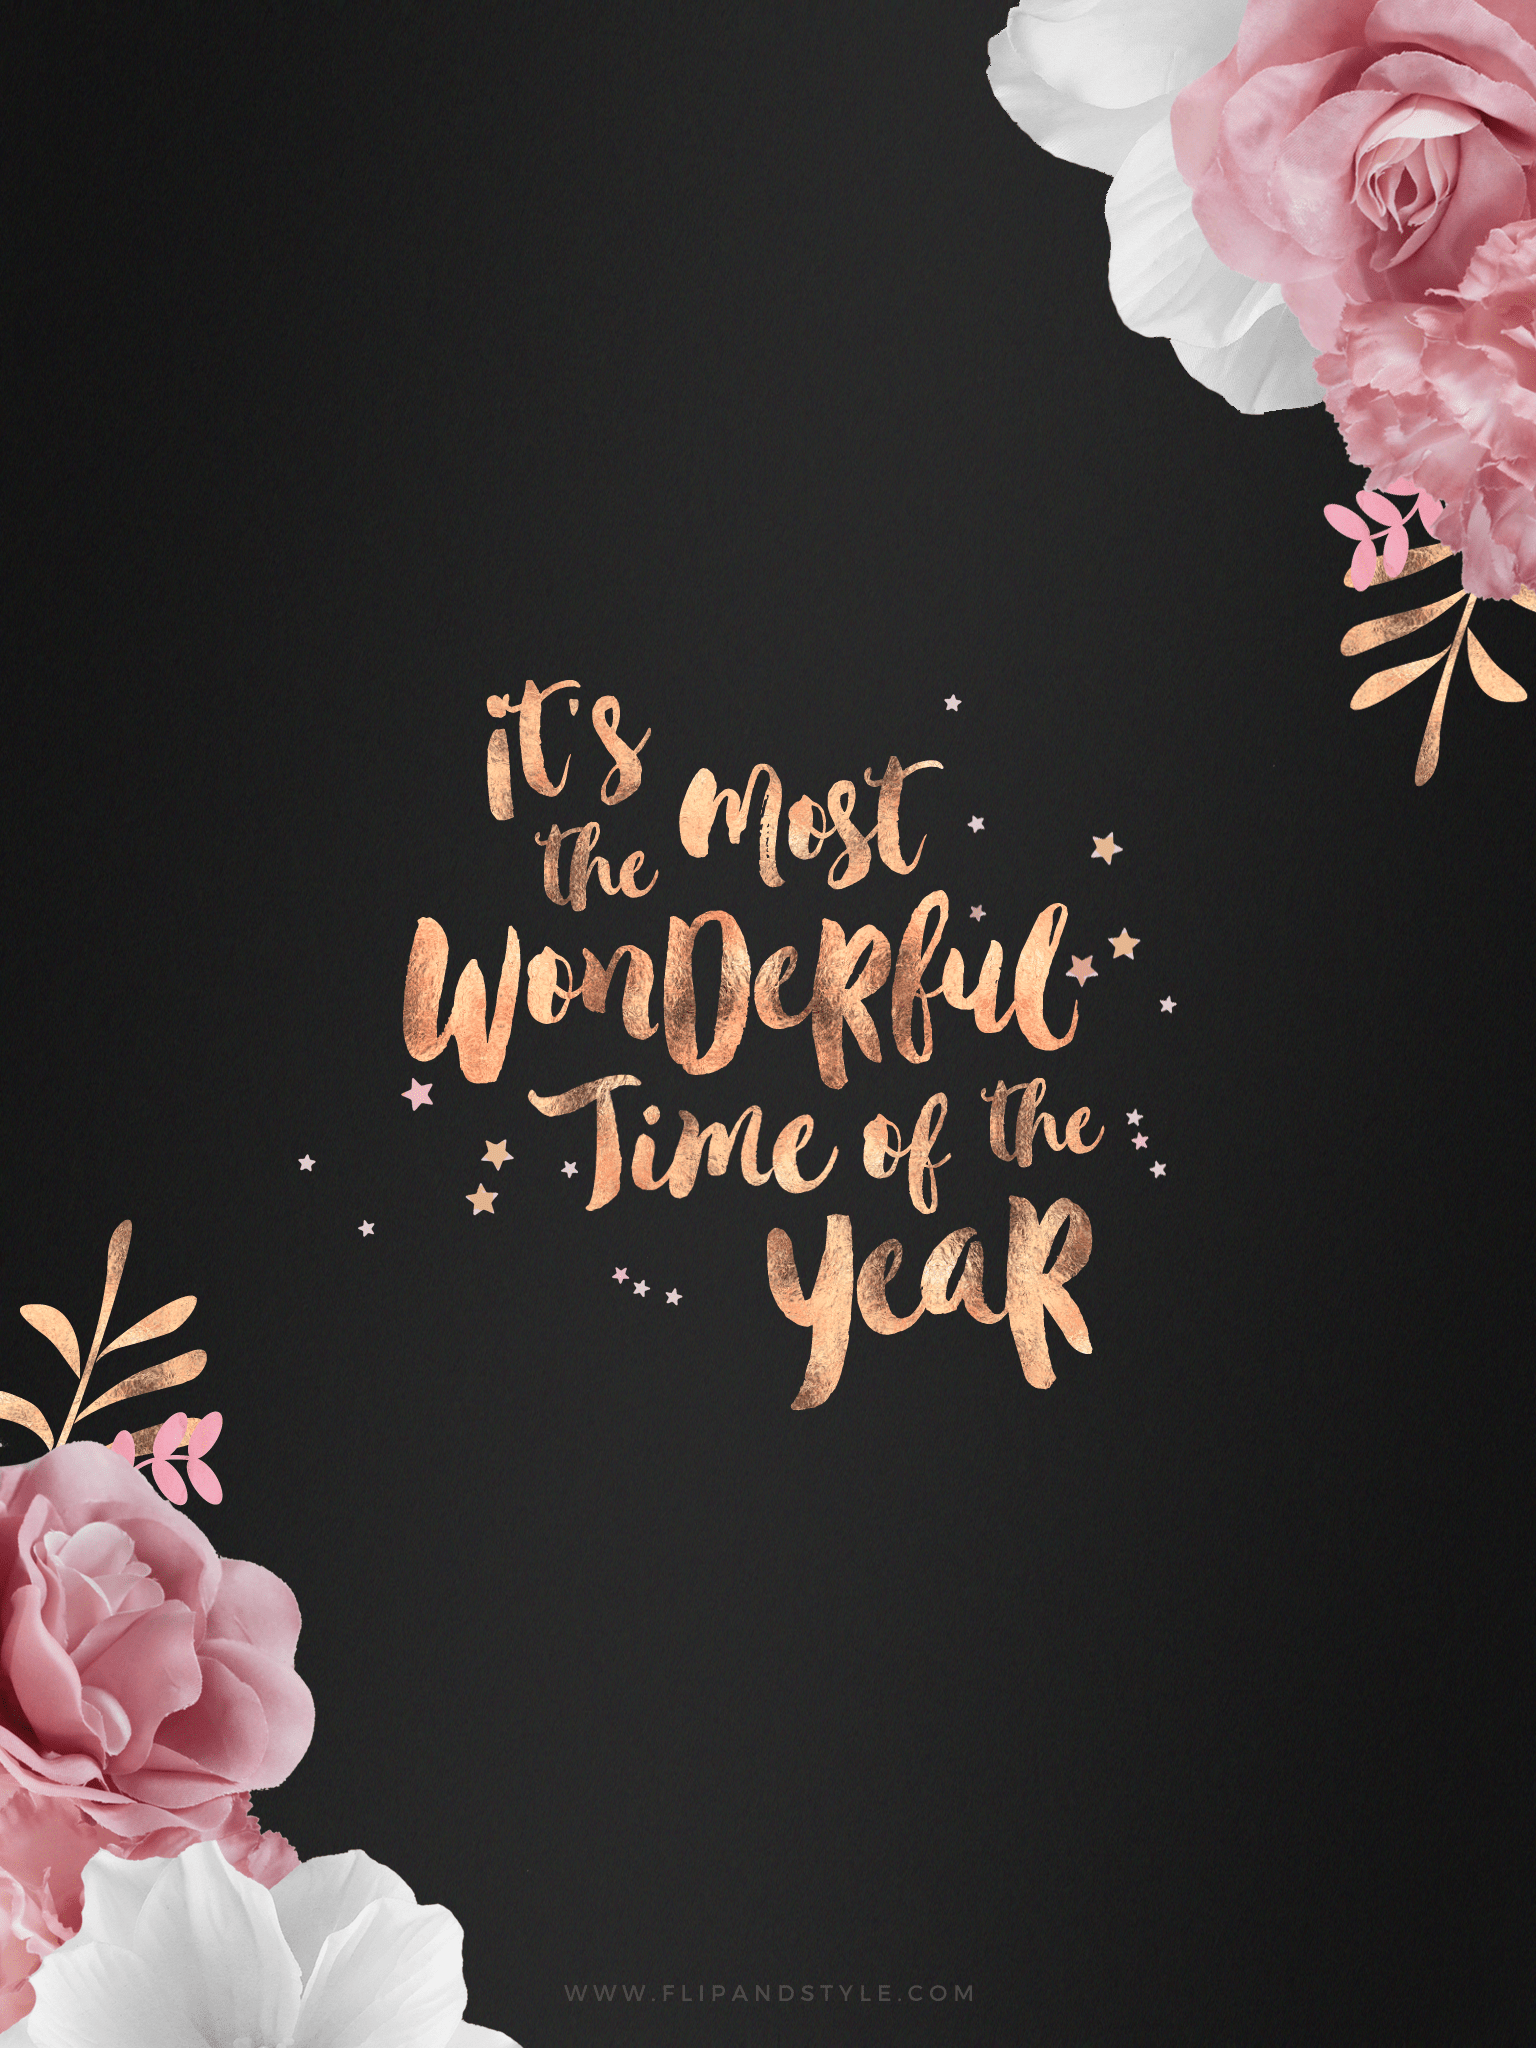 Girly Phone Wallpapers Quotes Free Rose Gold Festive Wallpapers